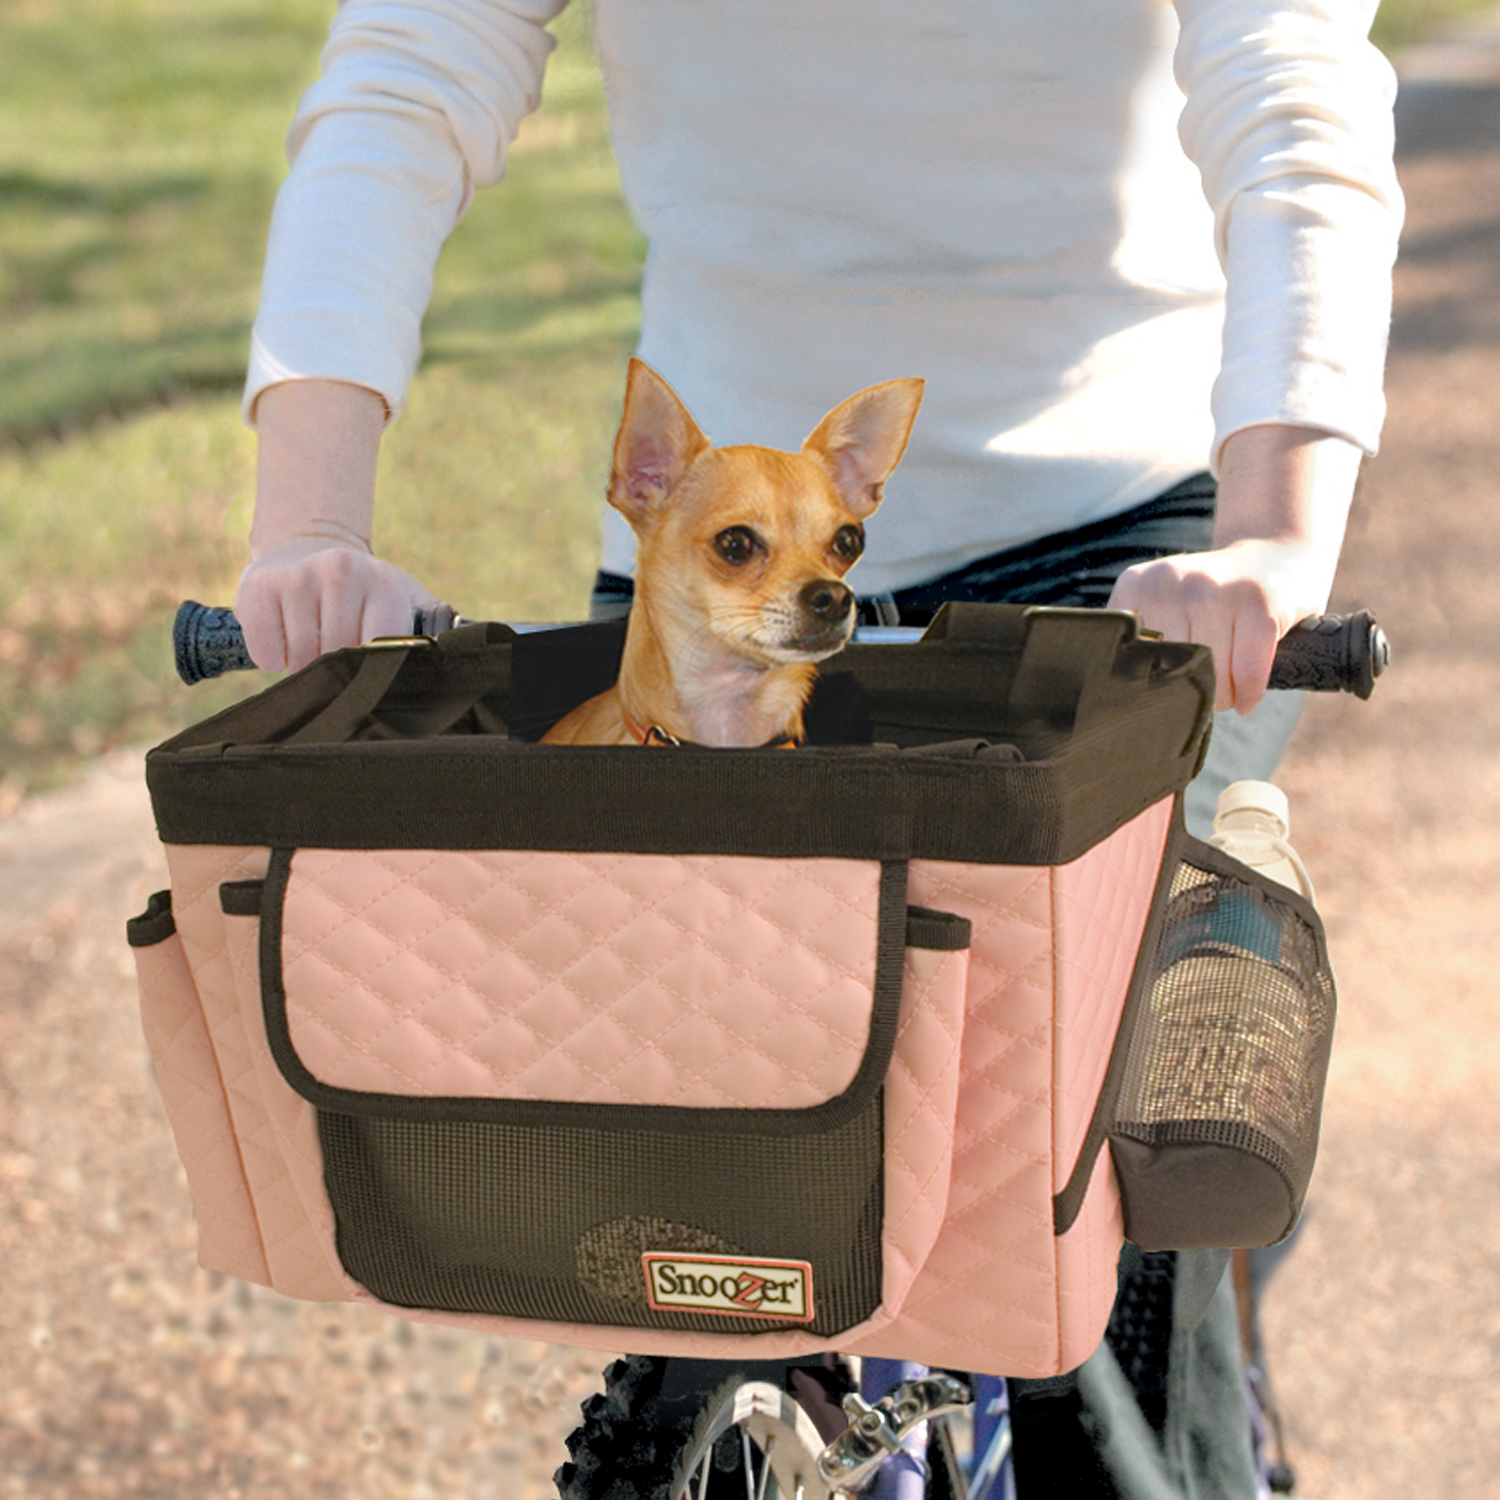 Take Your Dog On a Bike Ride!